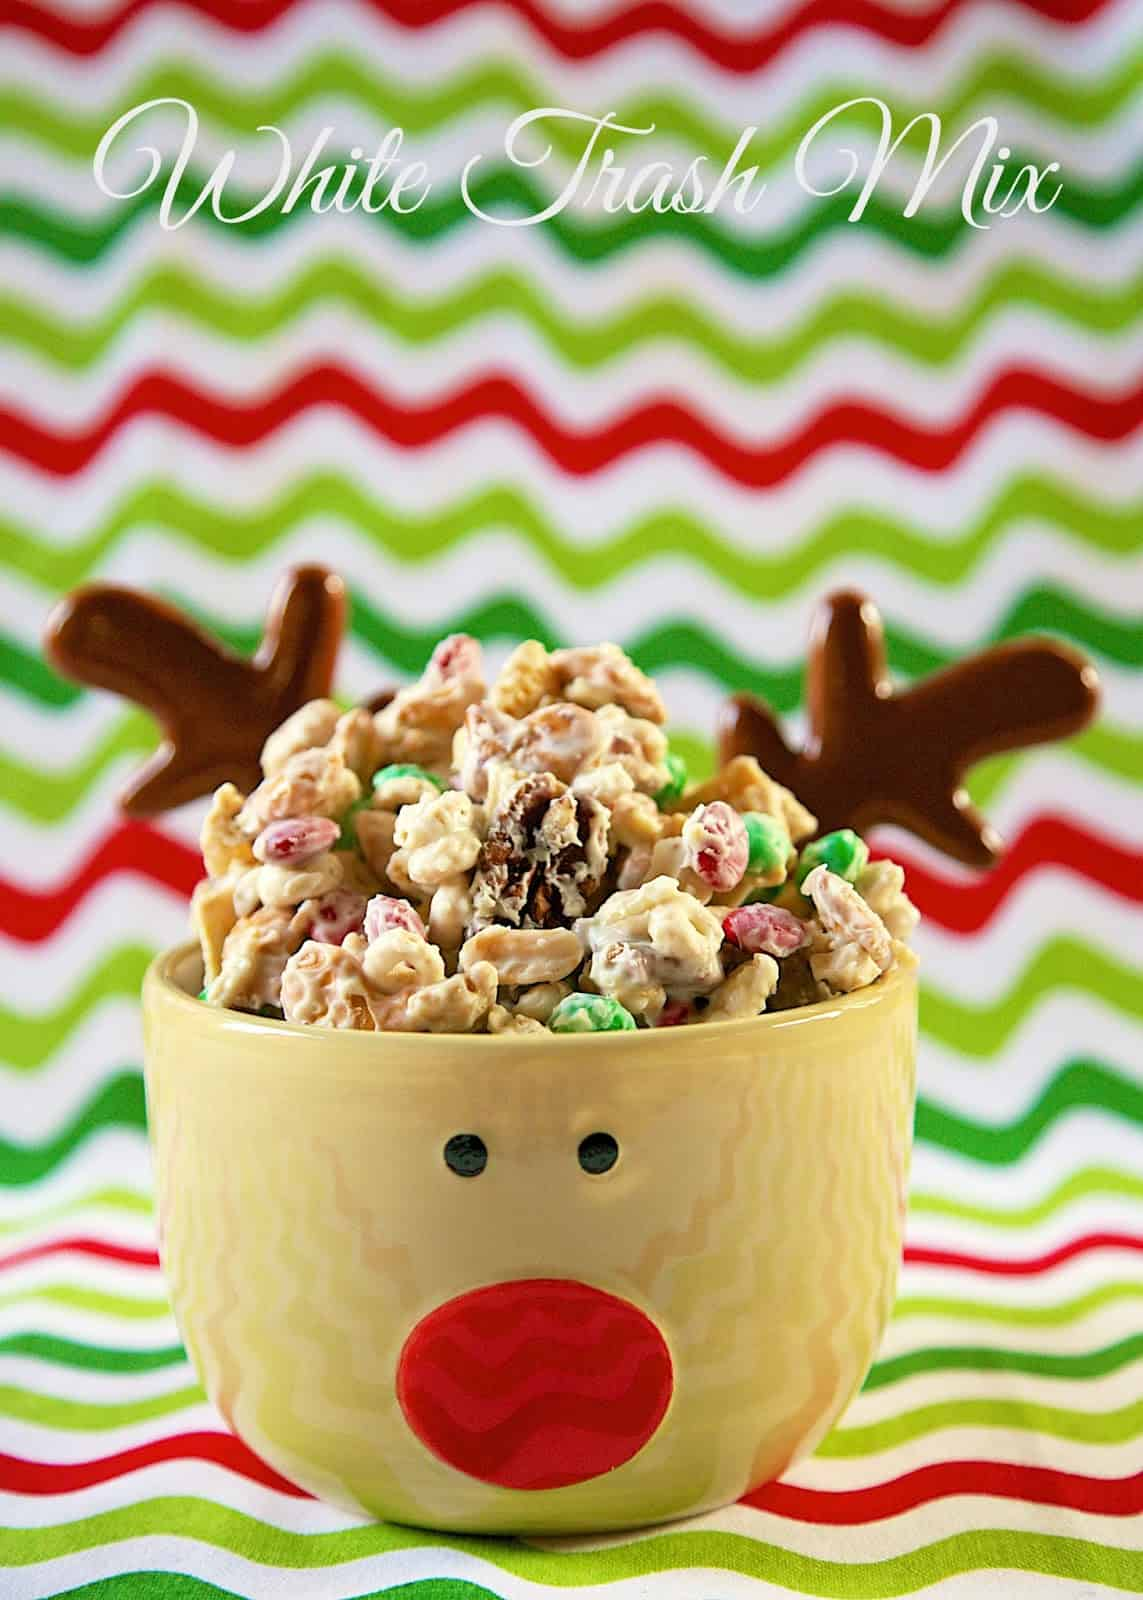 Alton Brown's White Trash Mix - white chocolate chex mix - HIGHLY addictive! Makes great neighbor or co-worker gifts. Chex, mixed nuts, cheerios, m&m candies, pretzels and white chocolate. A must for your holiday dessert tray! Everyone loves this no-bake holiday dessert recipe!